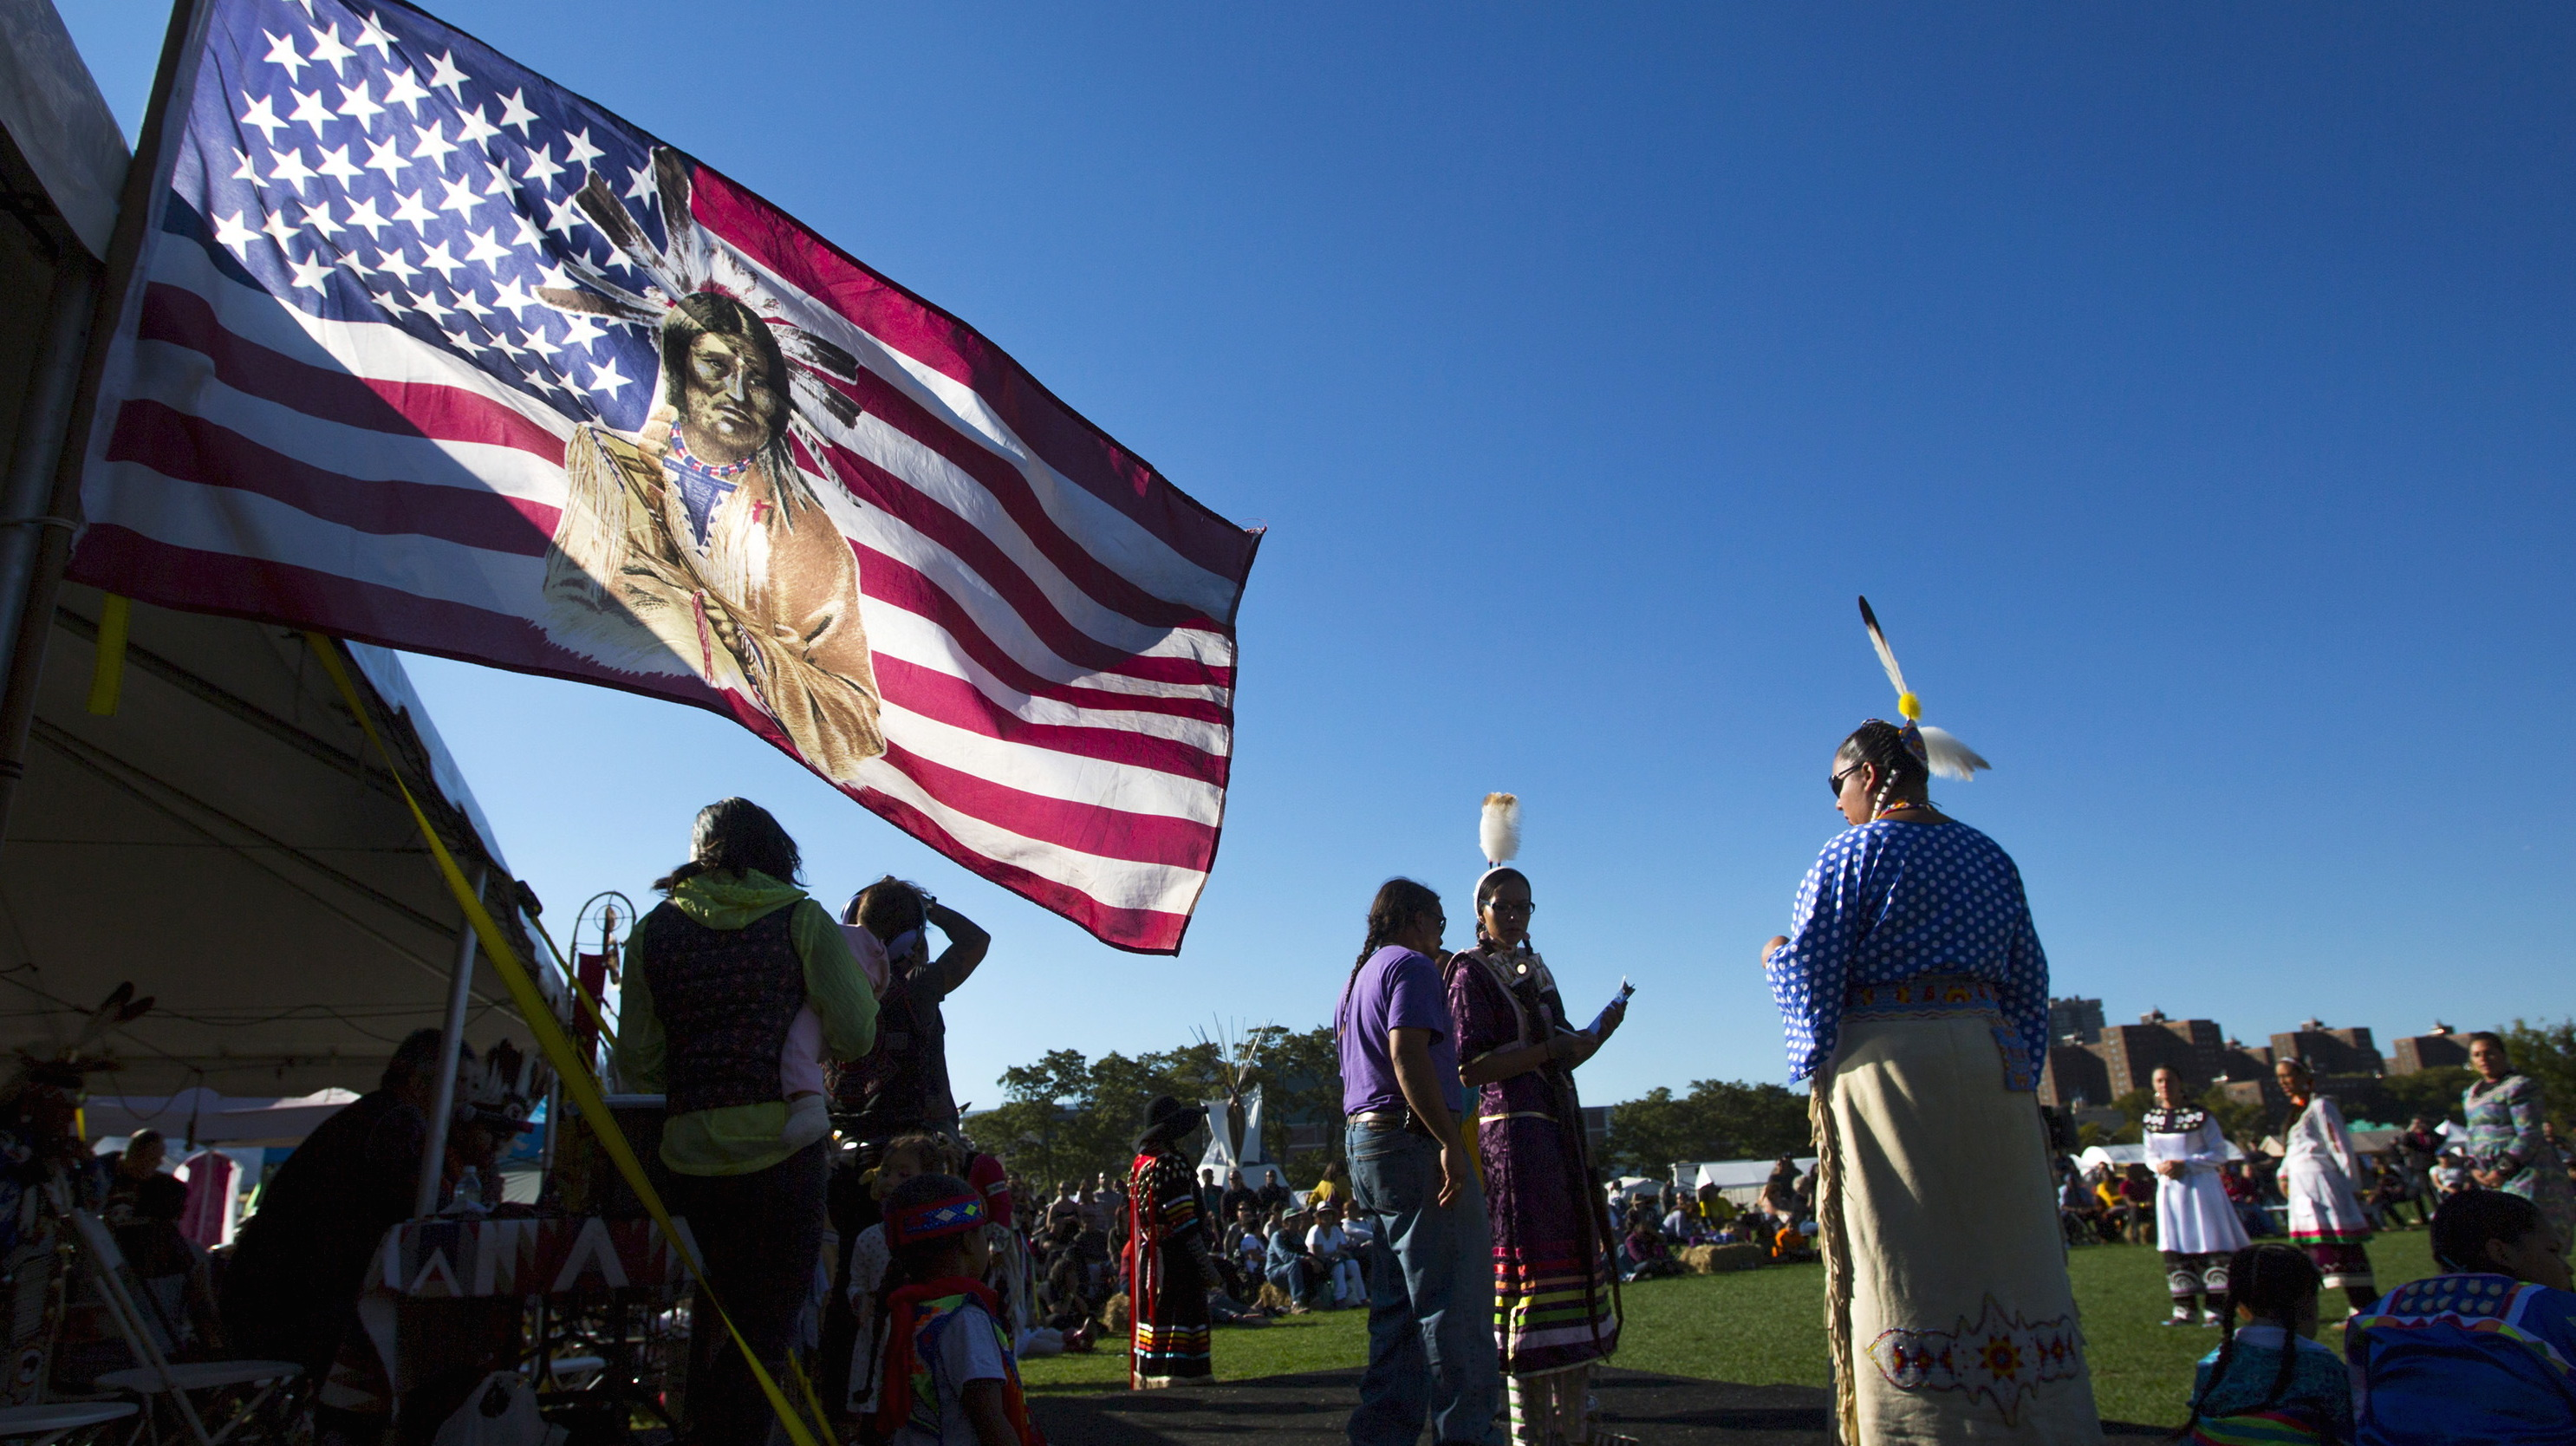 """Revellers take part during a """"pow-wow"""" celebrating the Indigenous Peoples' Day Festival in Randalls Island, New York, October 11, 2015. The festival is held as a counter-celebration to Columbus Day and is to promote Native American culture and history."""